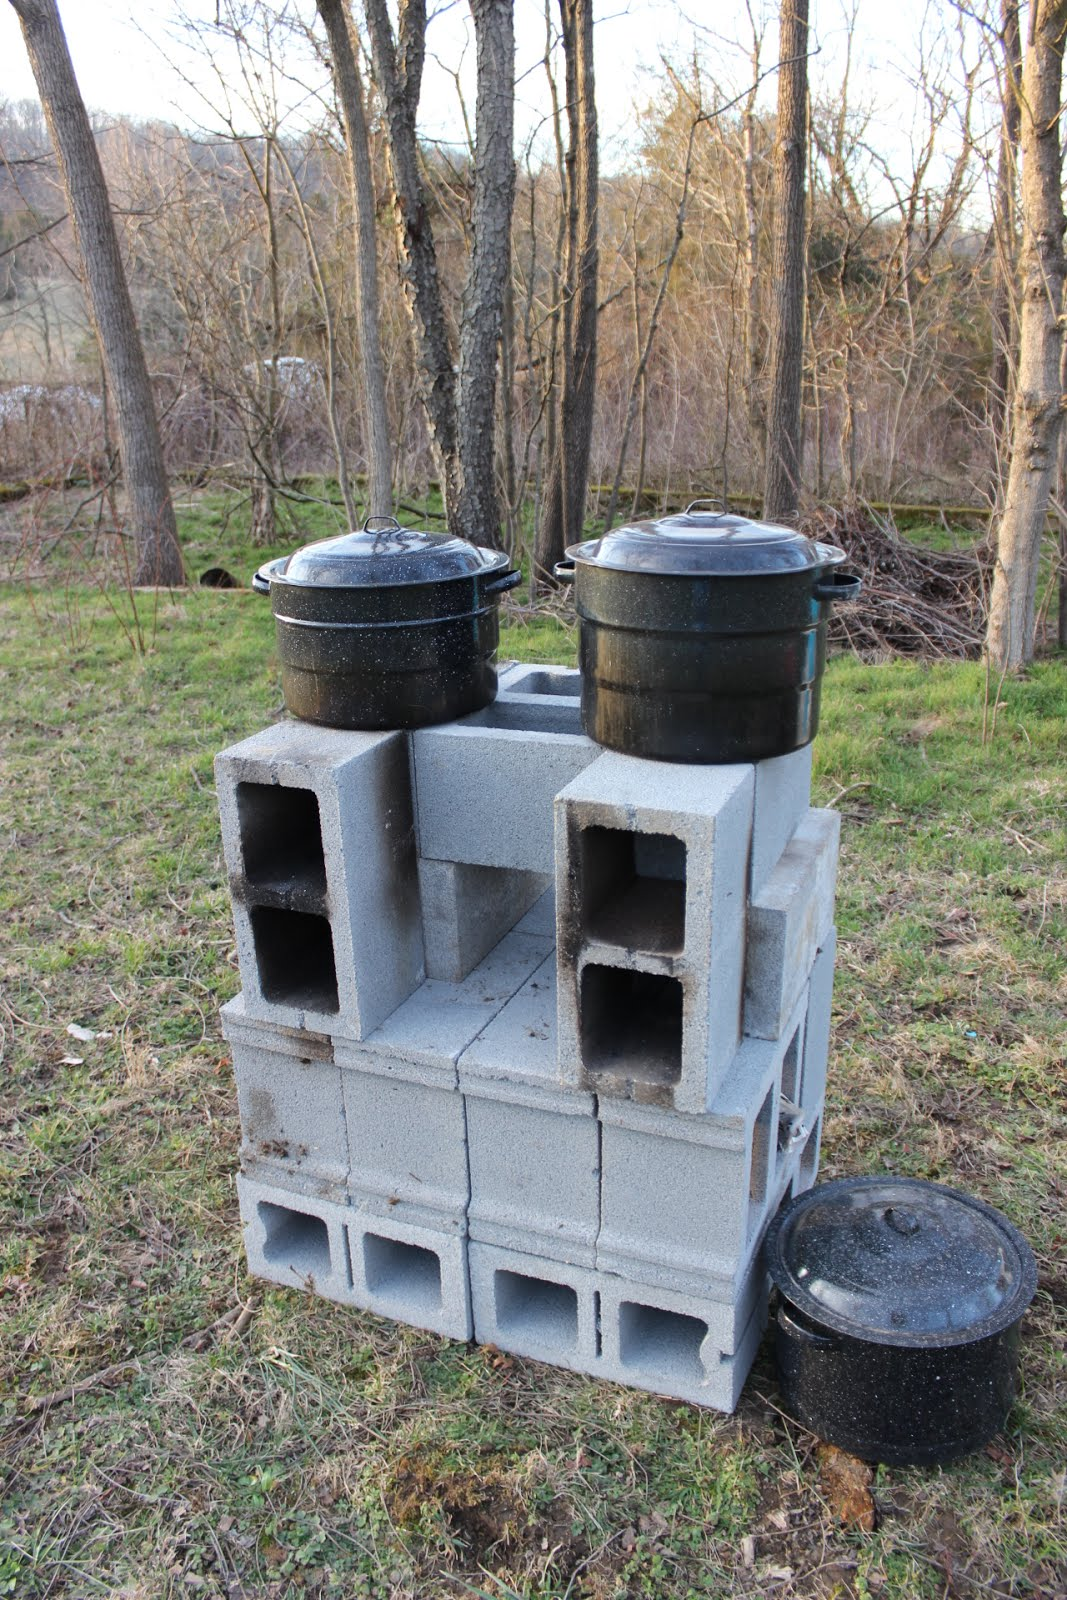 Double Rocket Stove